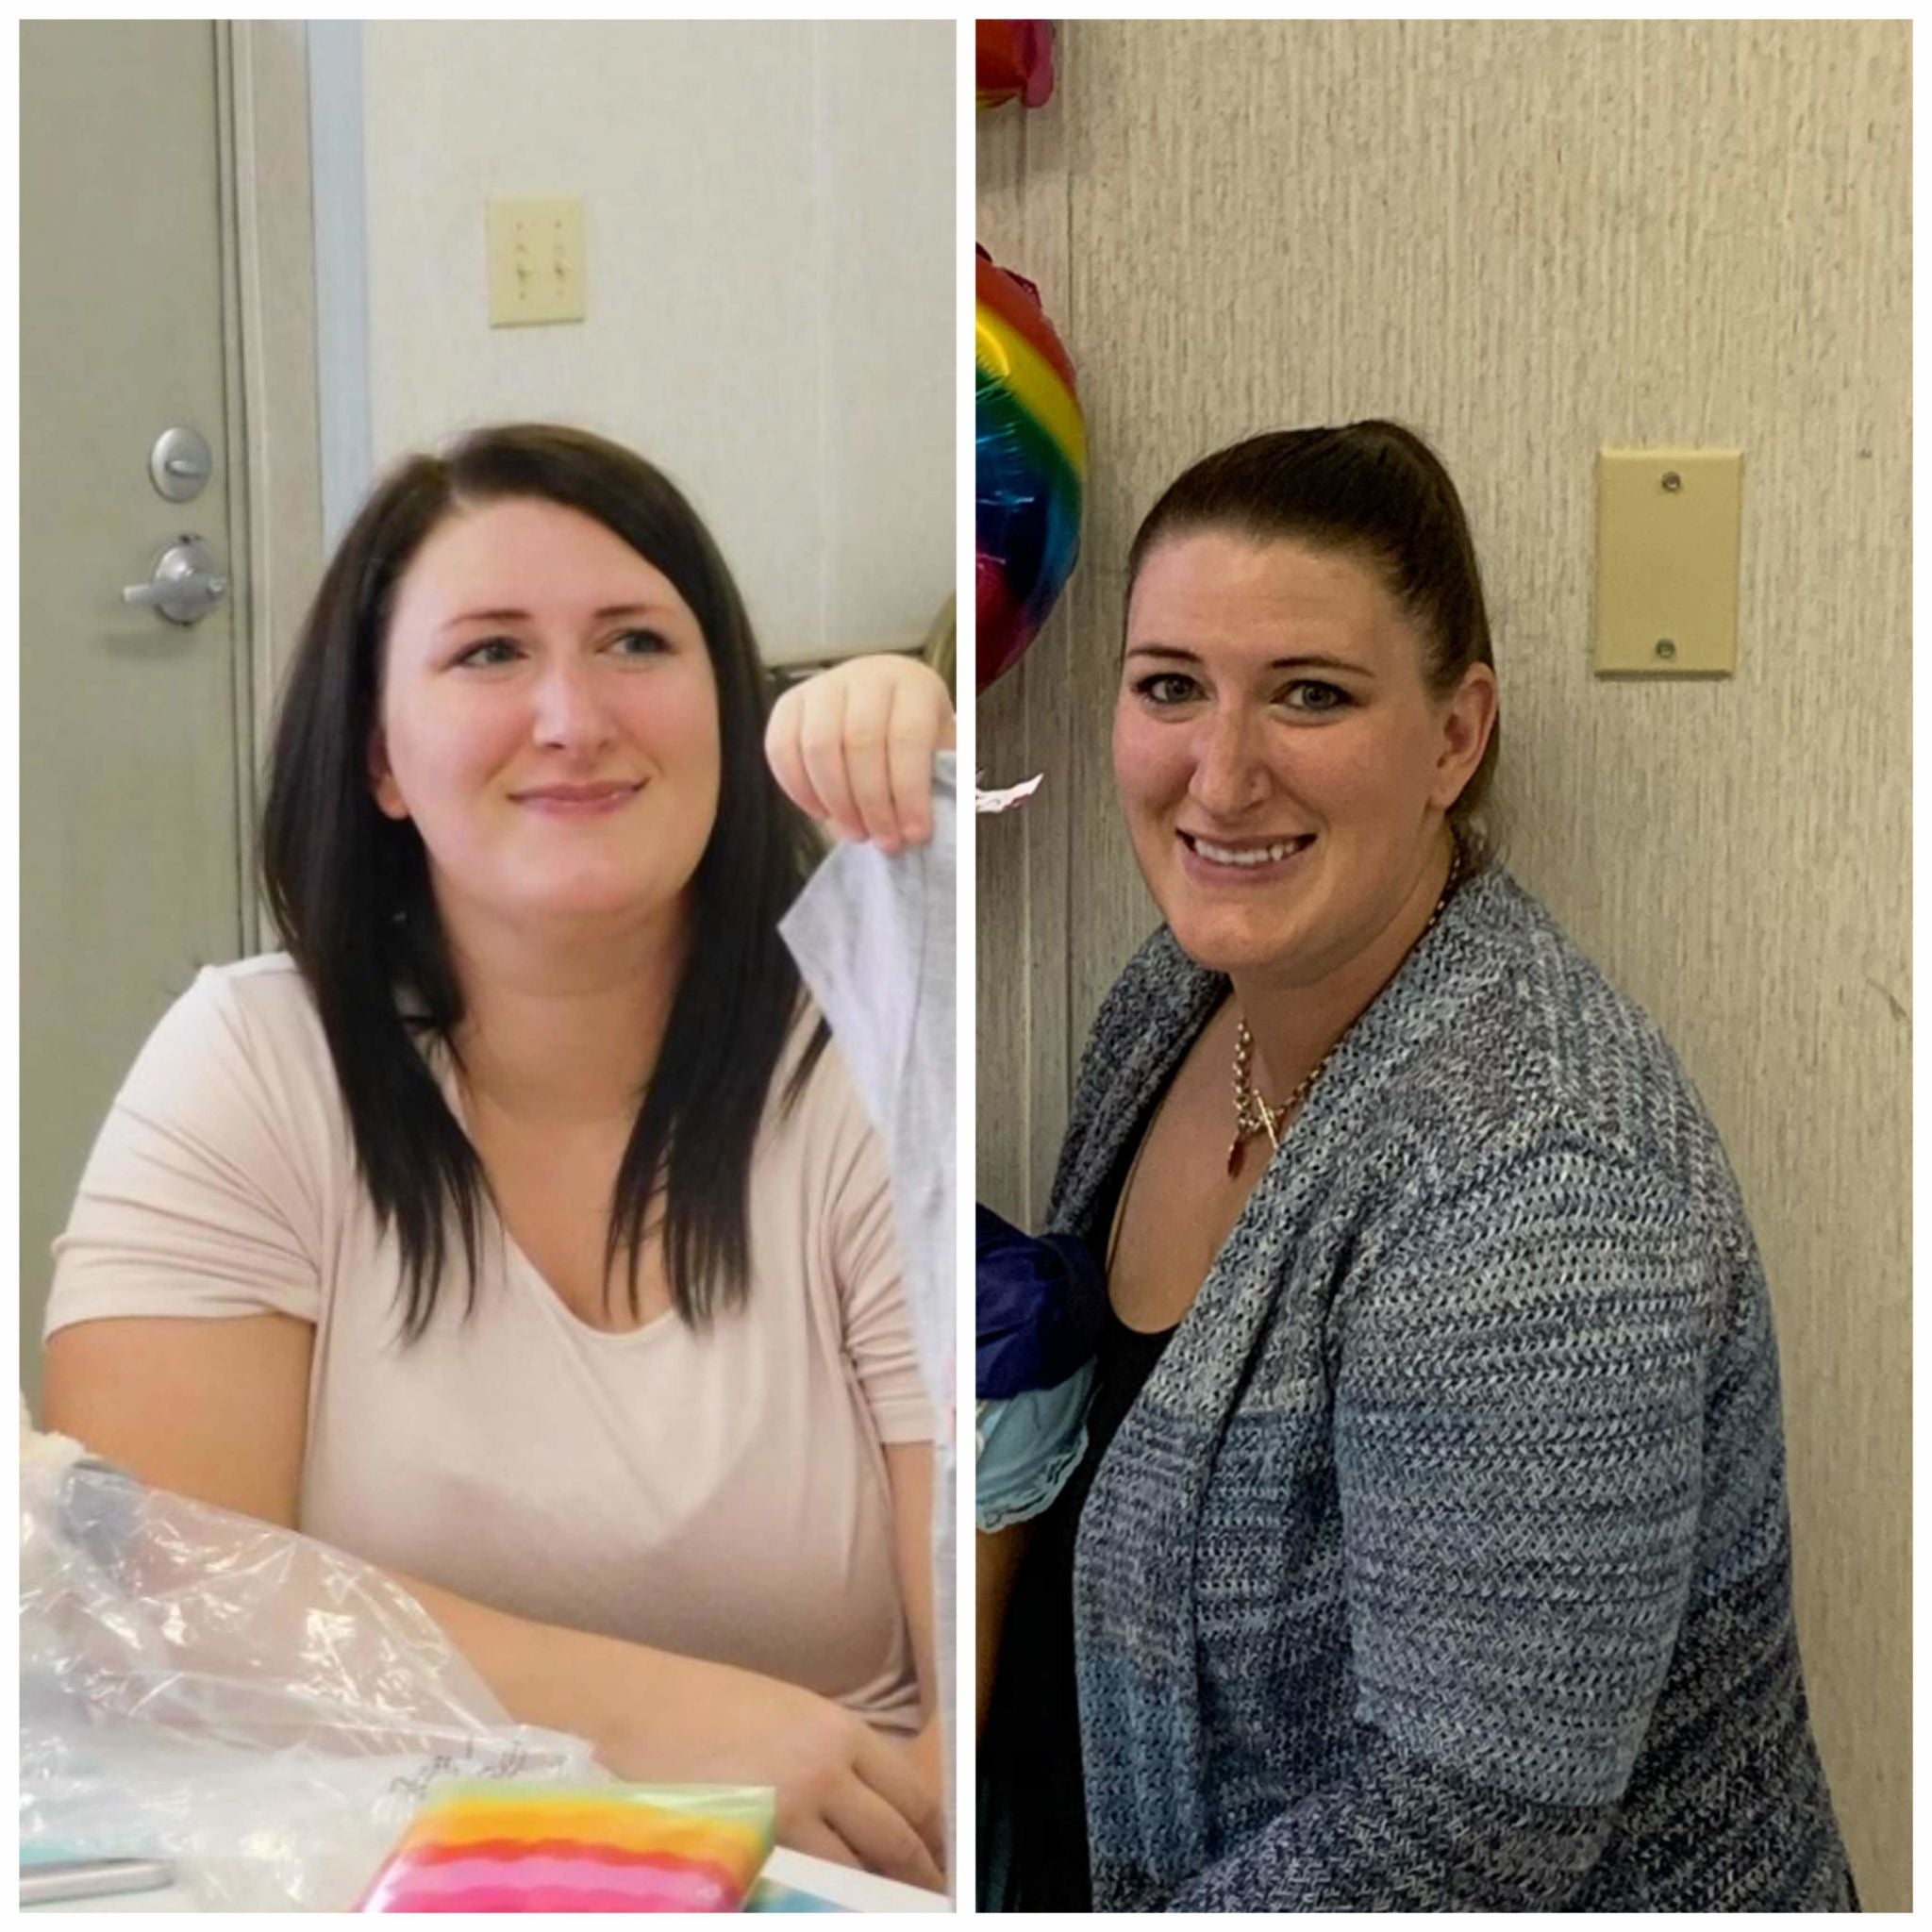 Stephanie, before and after